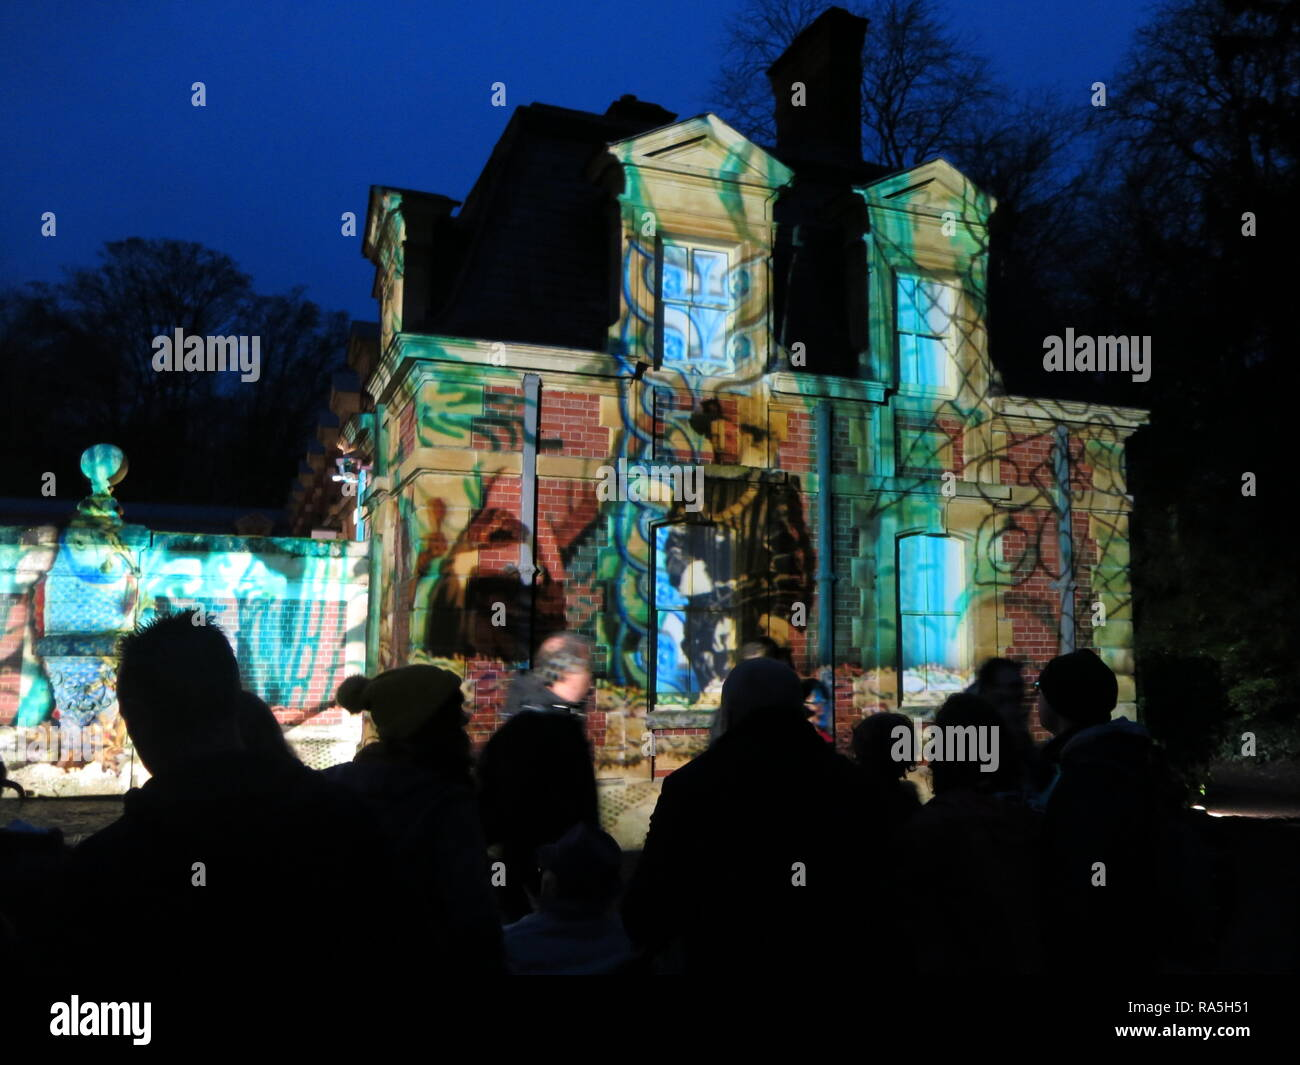 Audience silhouetted in the dark, watching the festive illuminations projected onto the walls of the stable block at Waddesdon Manor, Christmas 2018 - Stock Image